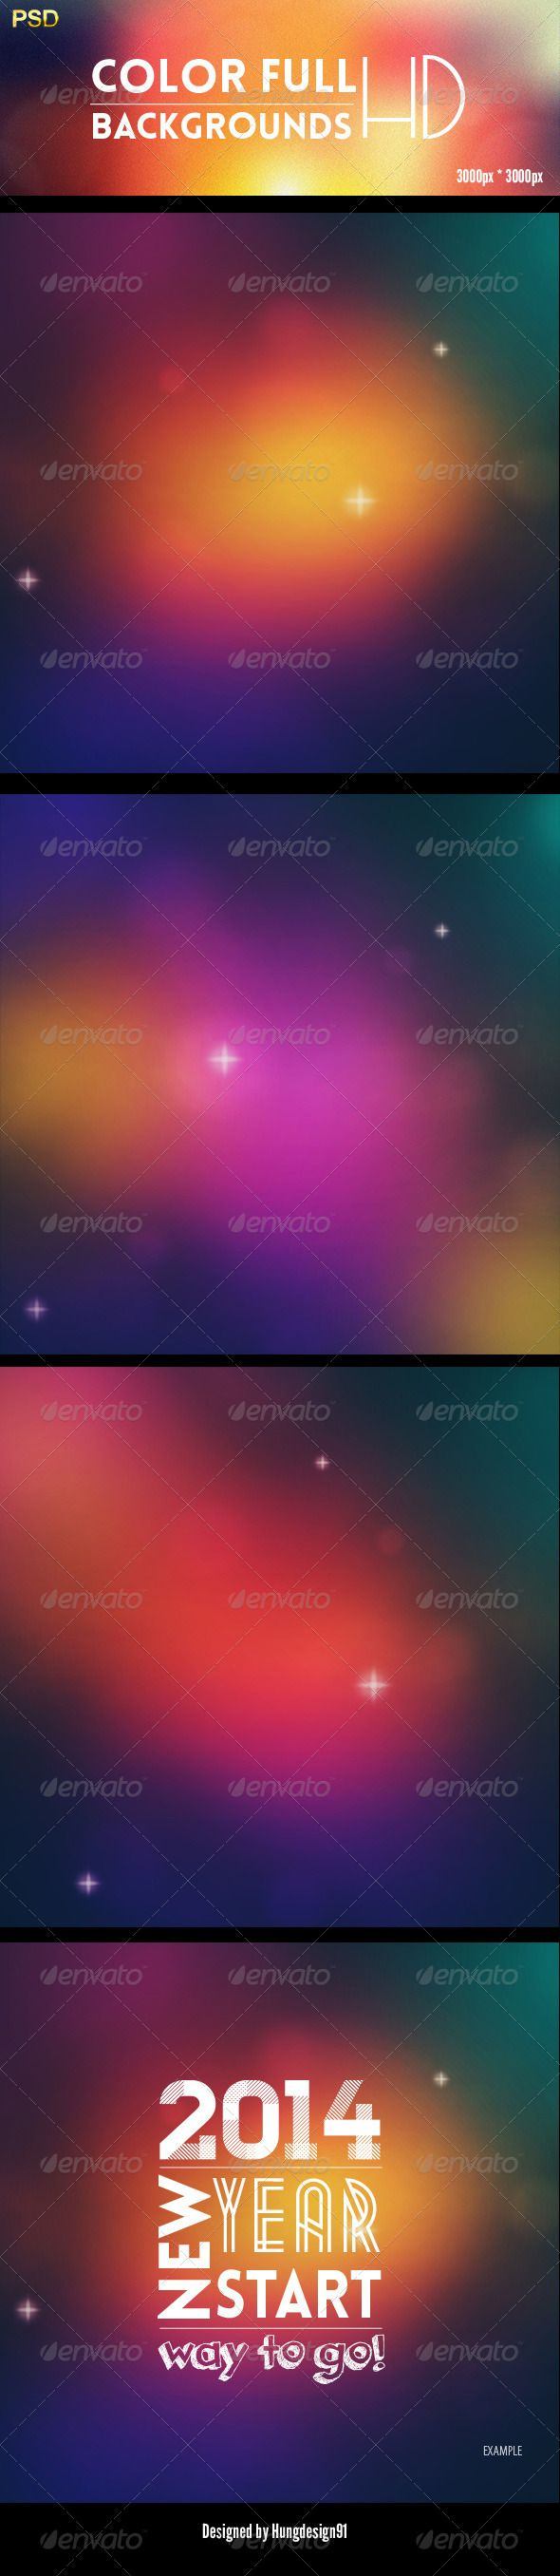 Color Full Backgrounds HD